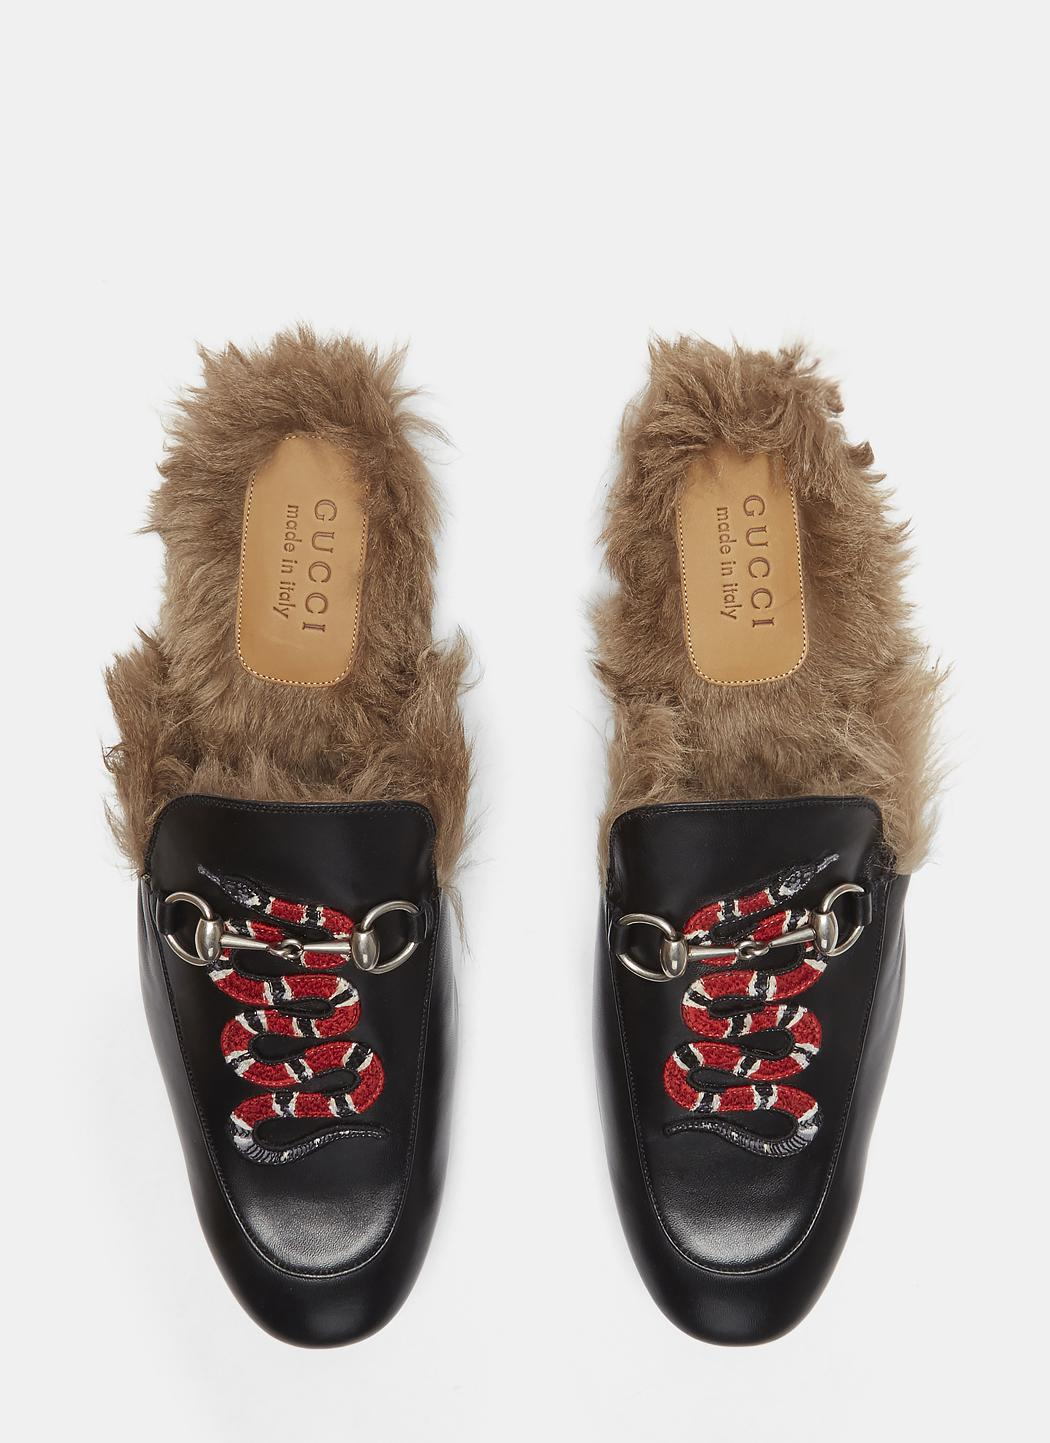 90bb7e103a8 Lyst - Gucci Princetown Kingsnake Slipper Shoes In Black in Black ...